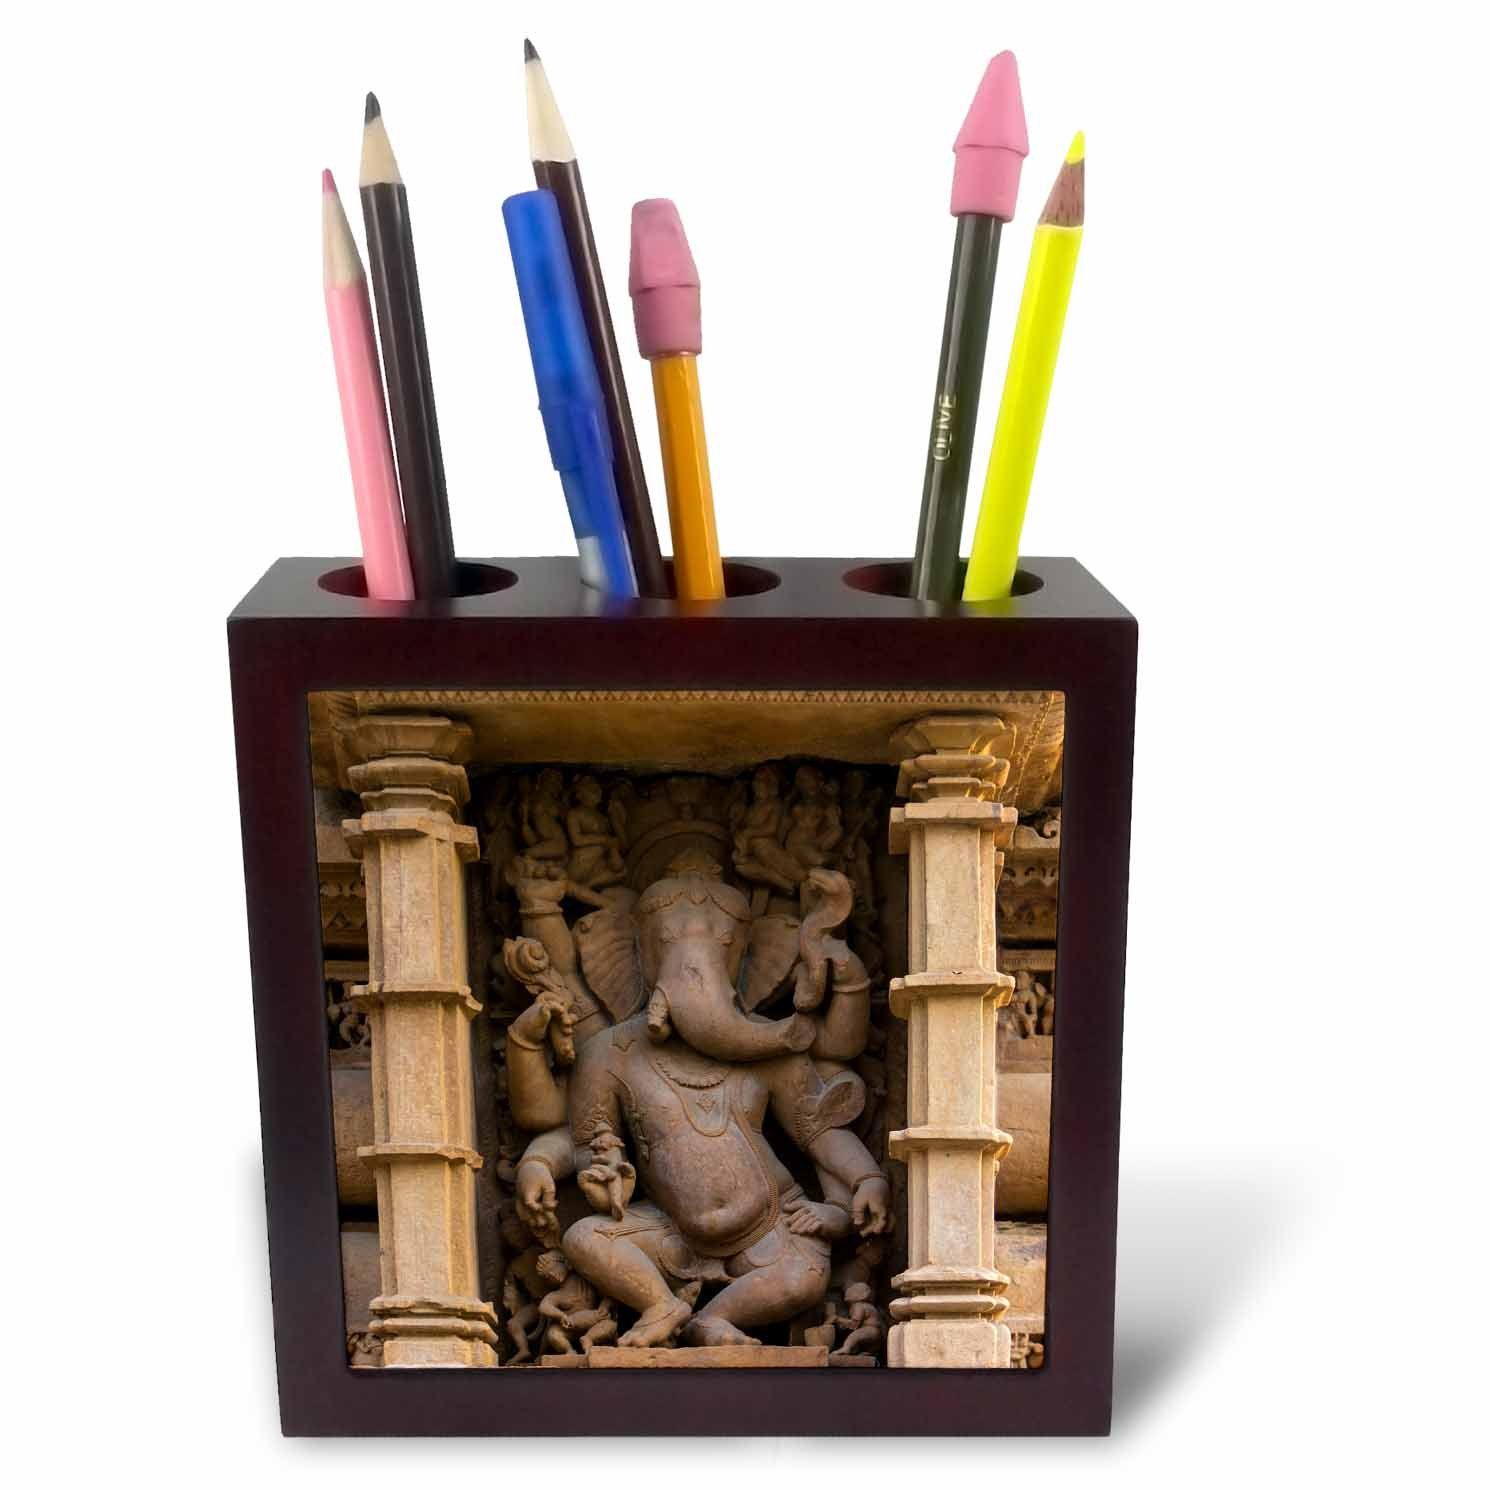 3dRose Danita Delimont - Temples - India. Hindu temples at Khajuraho, elephant deity carving. - 5 inch tile pen holder (ph_276793_1)